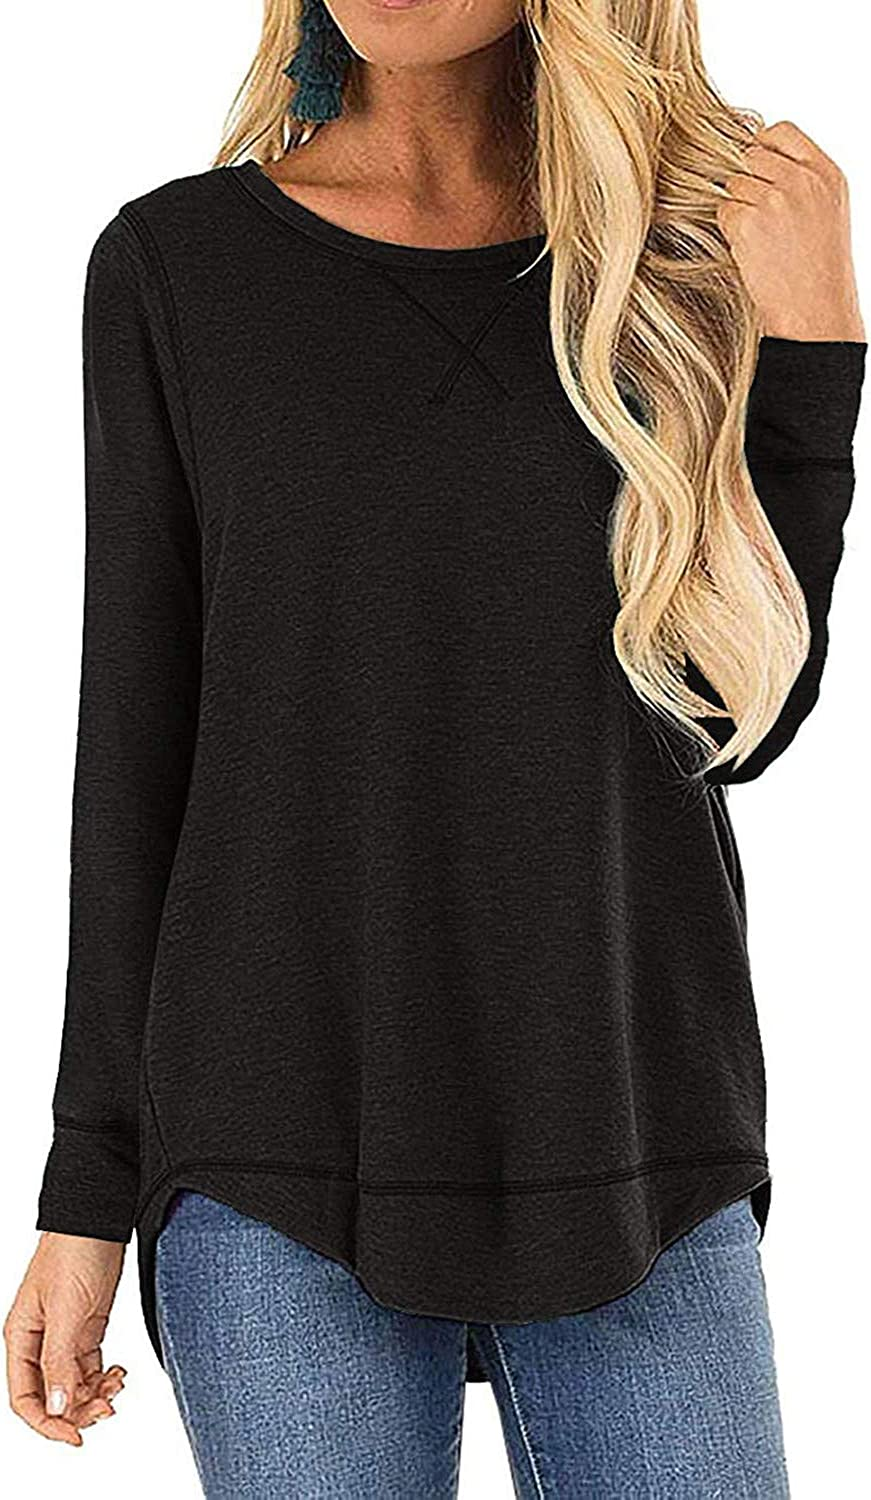 I2crazy Women's Casual Limited price sale Long Sleeve Tops Max 54% OFF Fall Tunic Tshirt Blouse